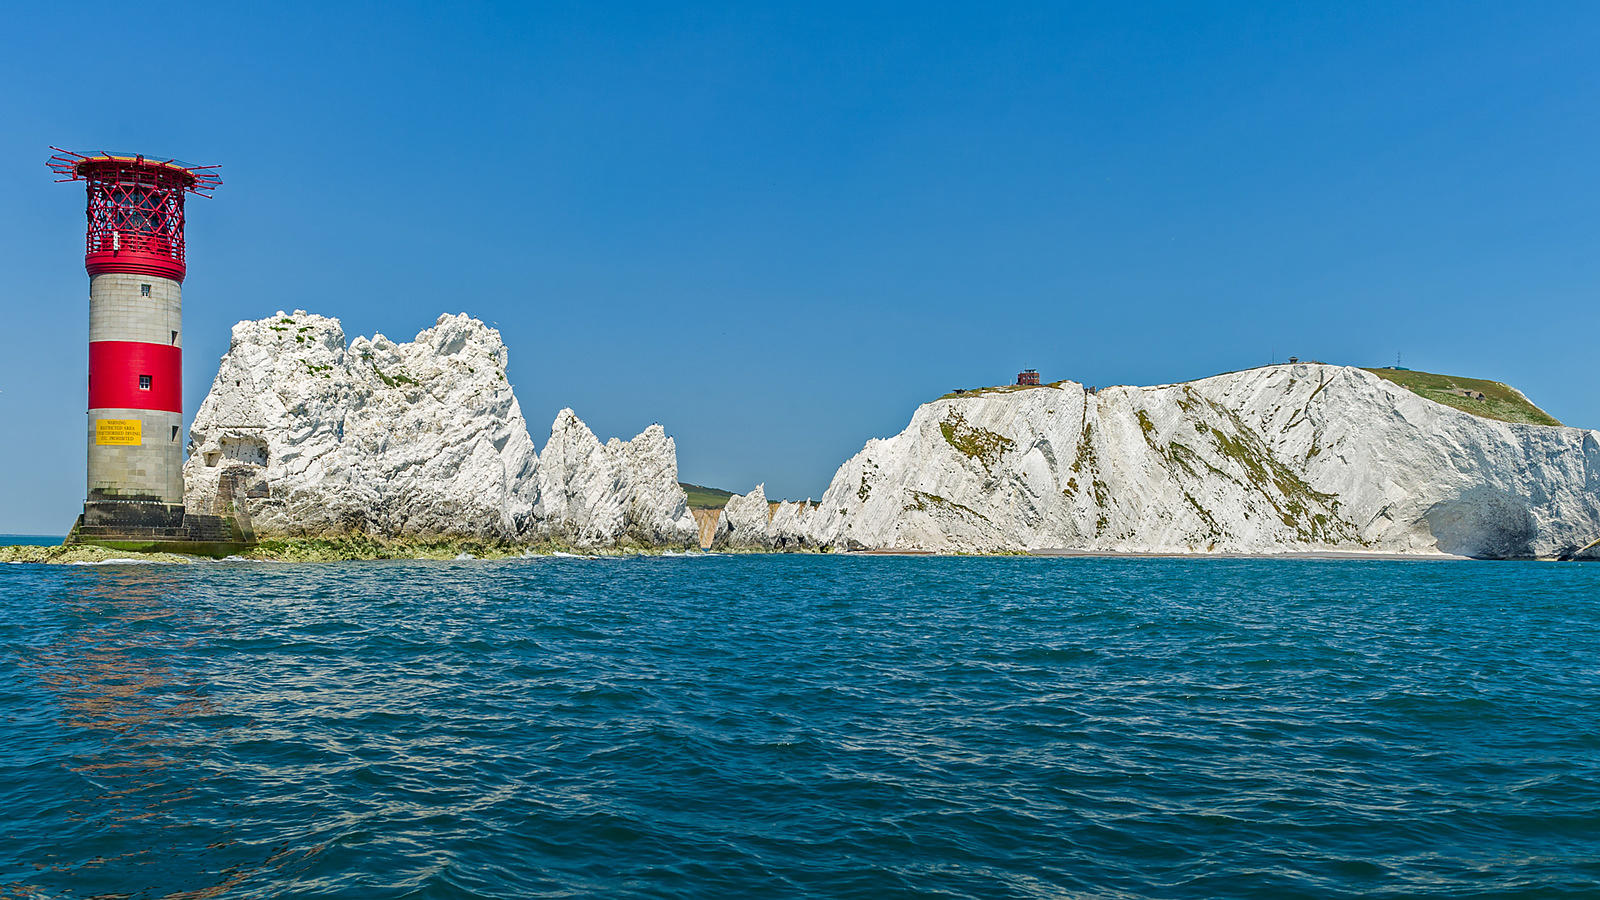 Sea View: The Needles and Old Point Battery